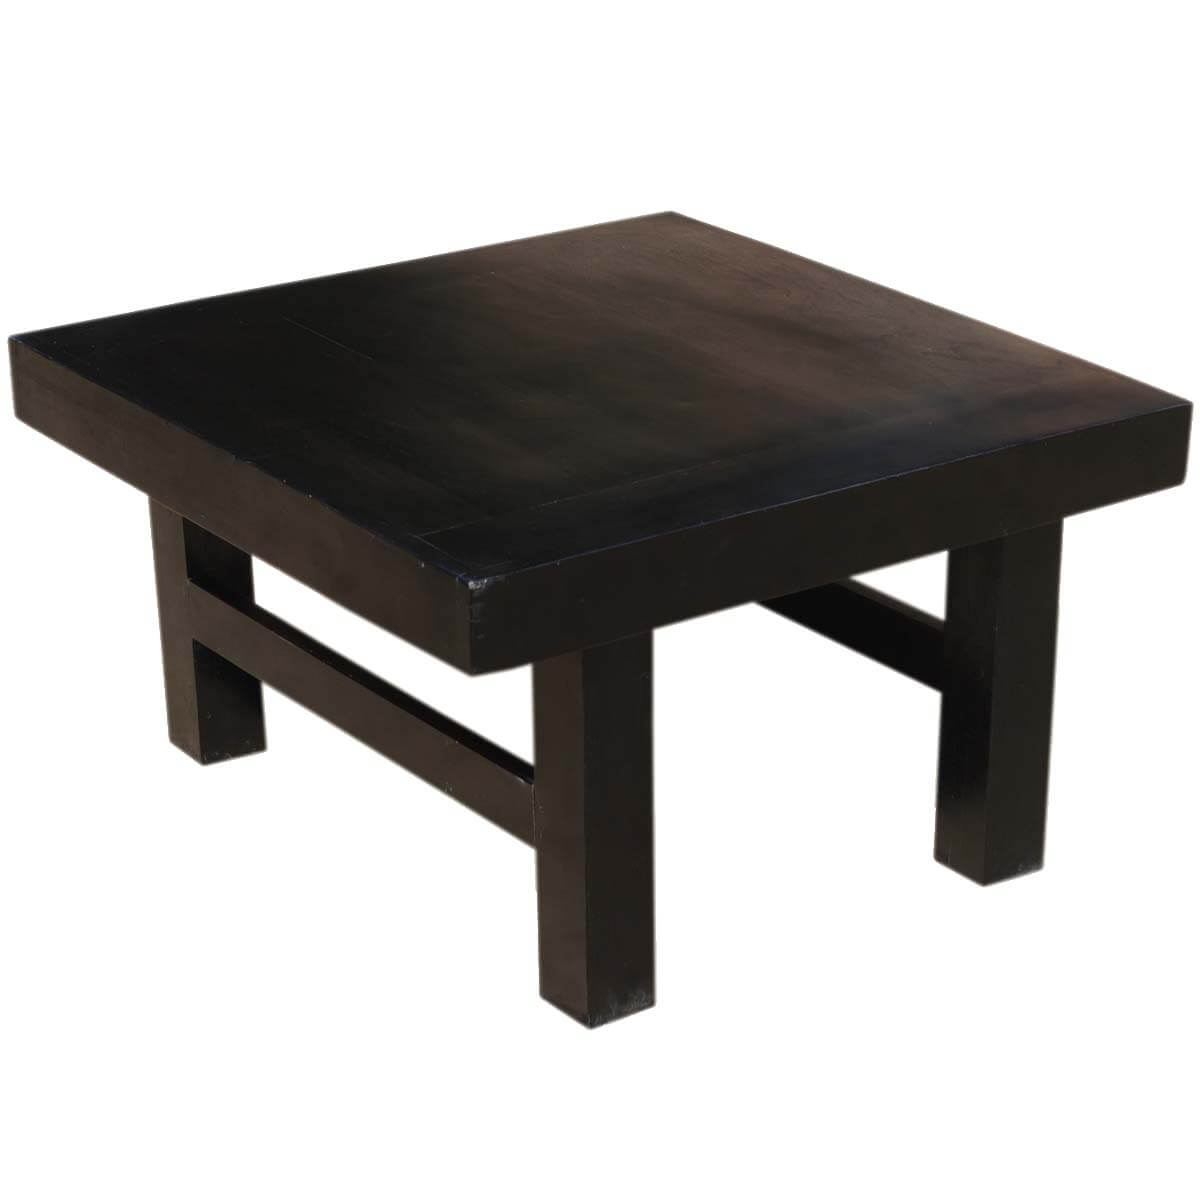 "Square Coffee Table: Kansas City Contemporary Indian Rosewood 32"" Black Square"